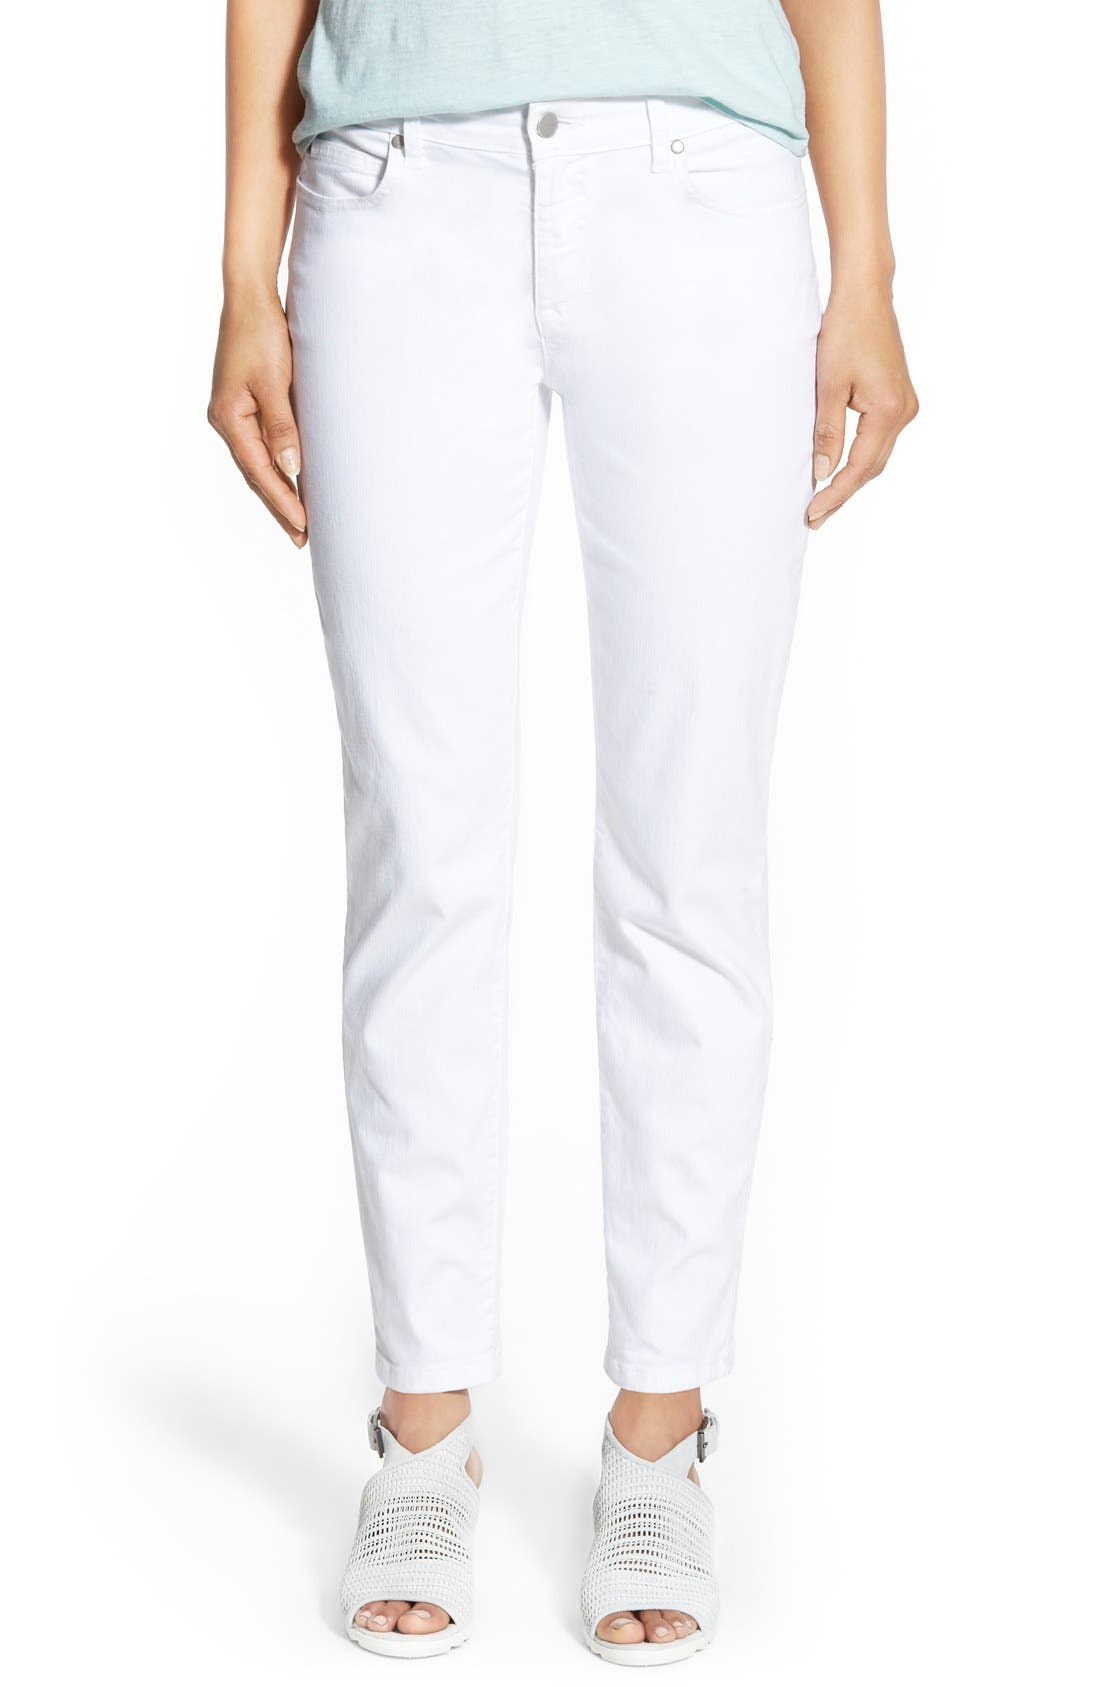 Garment Dyed Stretch Ankle Skinny Jeans,                             Main thumbnail 1, color,                             White